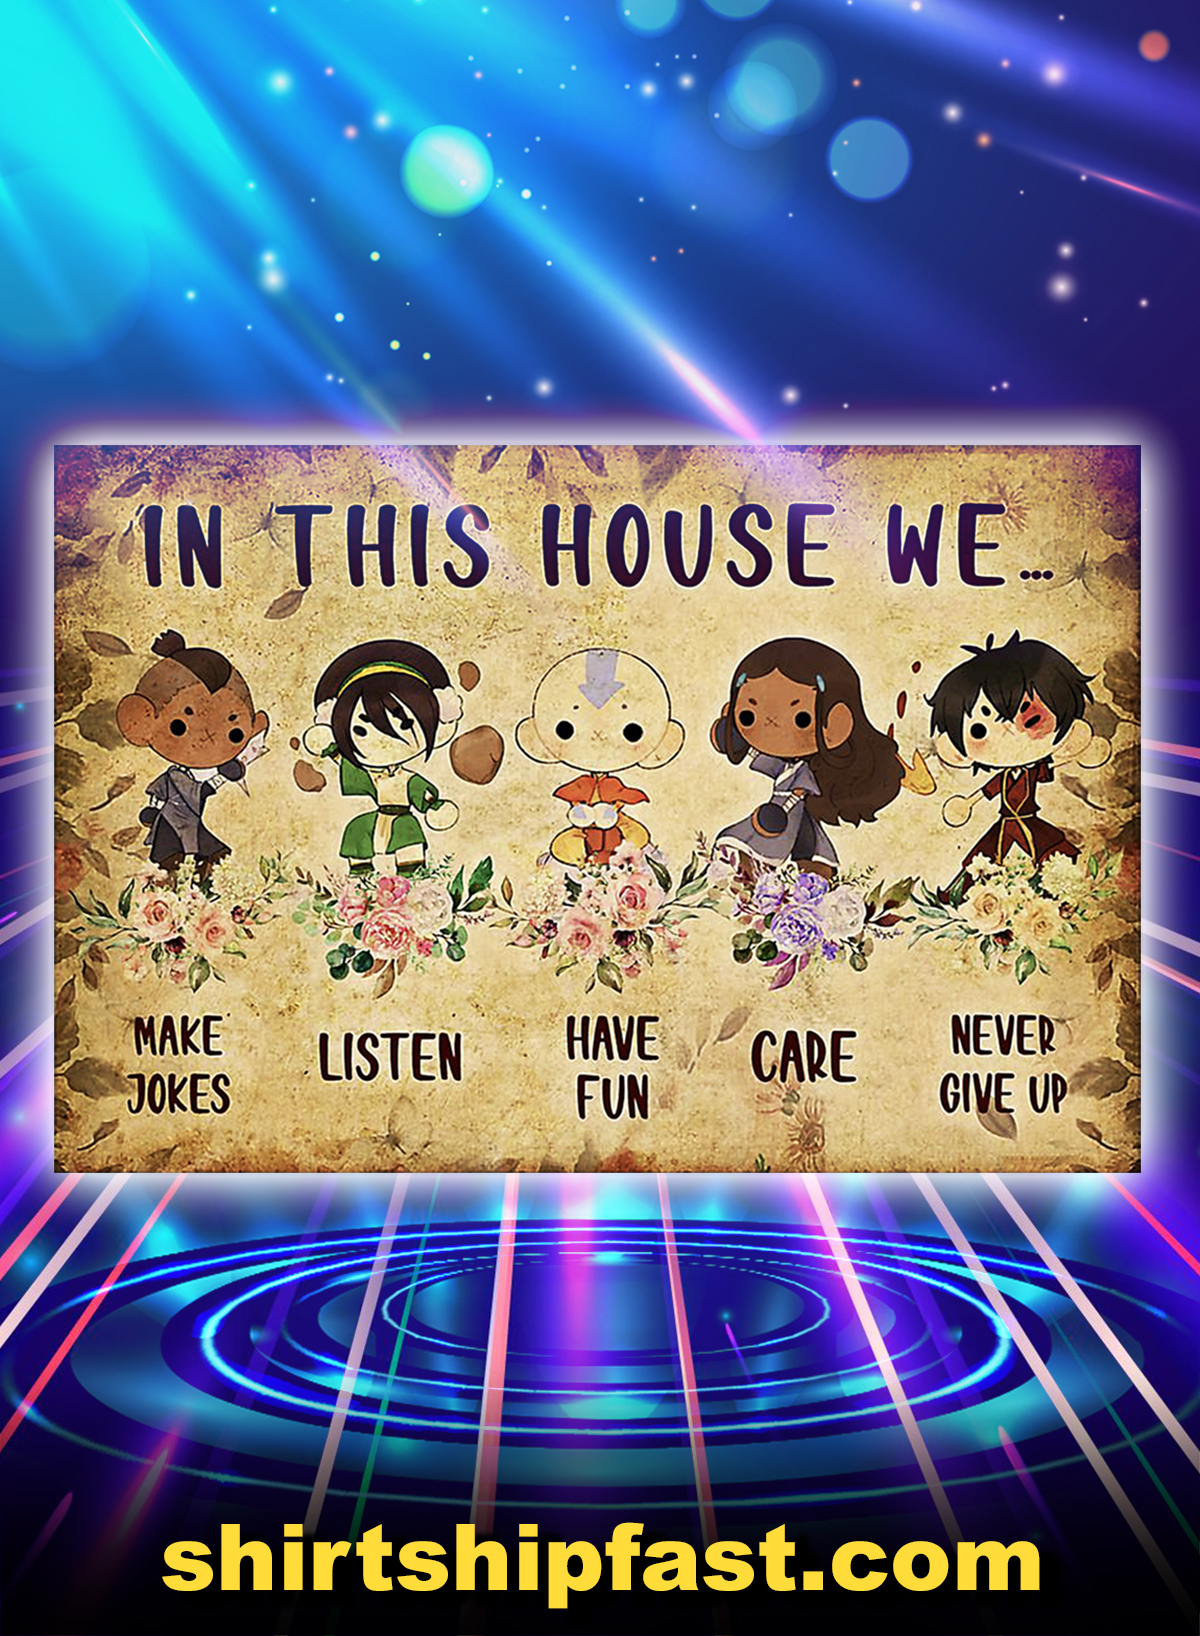 The airbender in this house we poster - A1